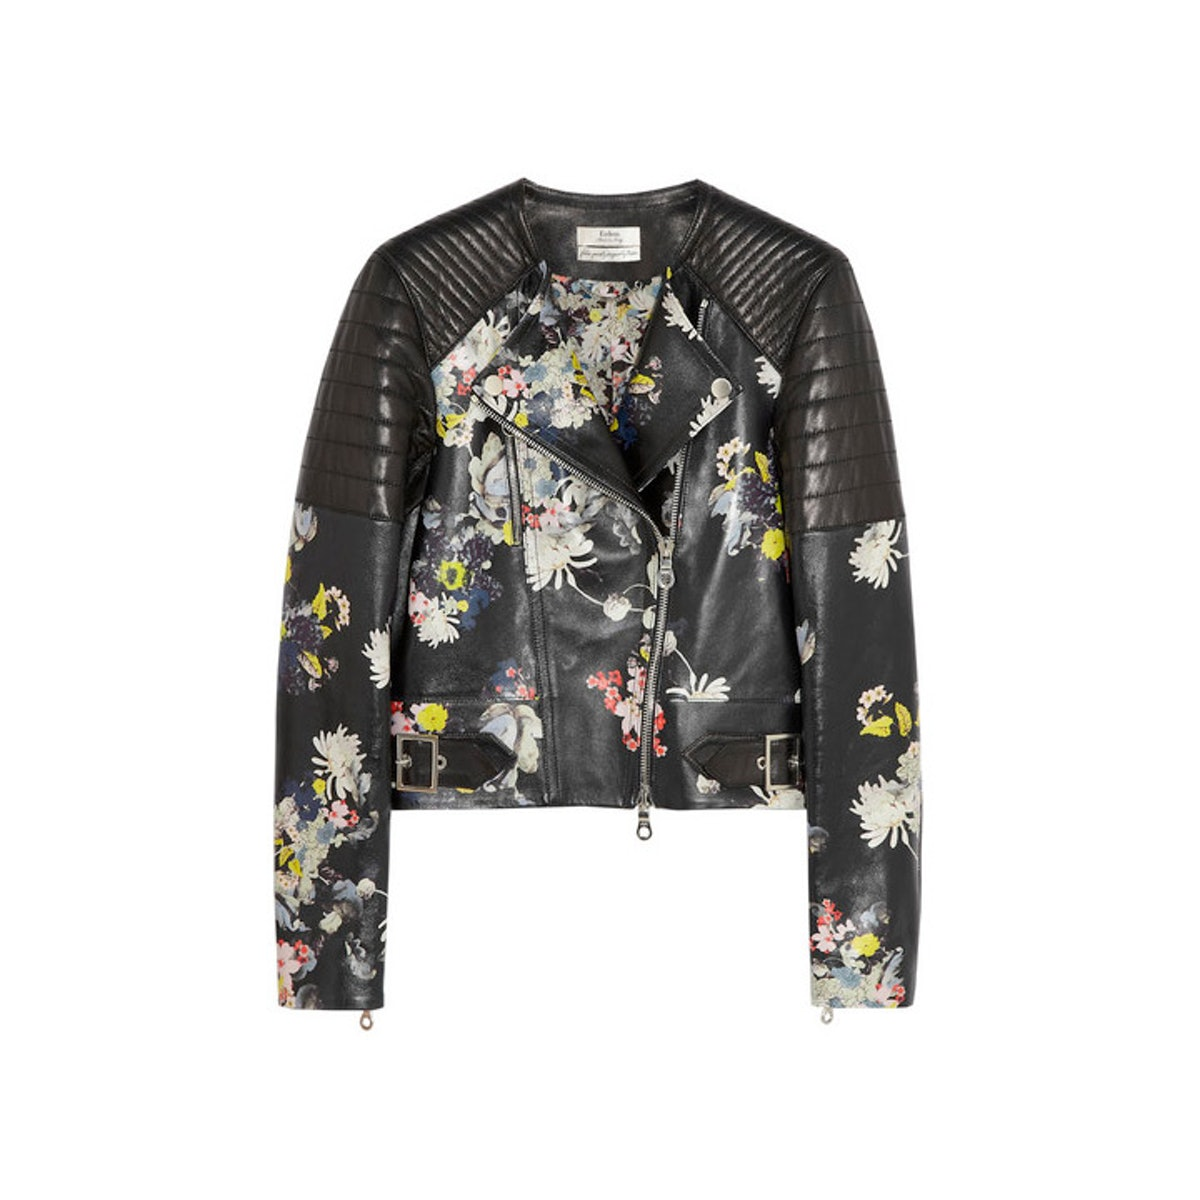 Believe it or not, I didn't own a single perfecto jacket until I got this beautiful floral one from Erdem, which is great for layering over a million turtlenecks or under a heavy coat until spring. *Erdem jade floral-print nappa leather biker jacket, $5100,* [*net-a-porter.com*](http://www.net-a-porter.com/product/407965)